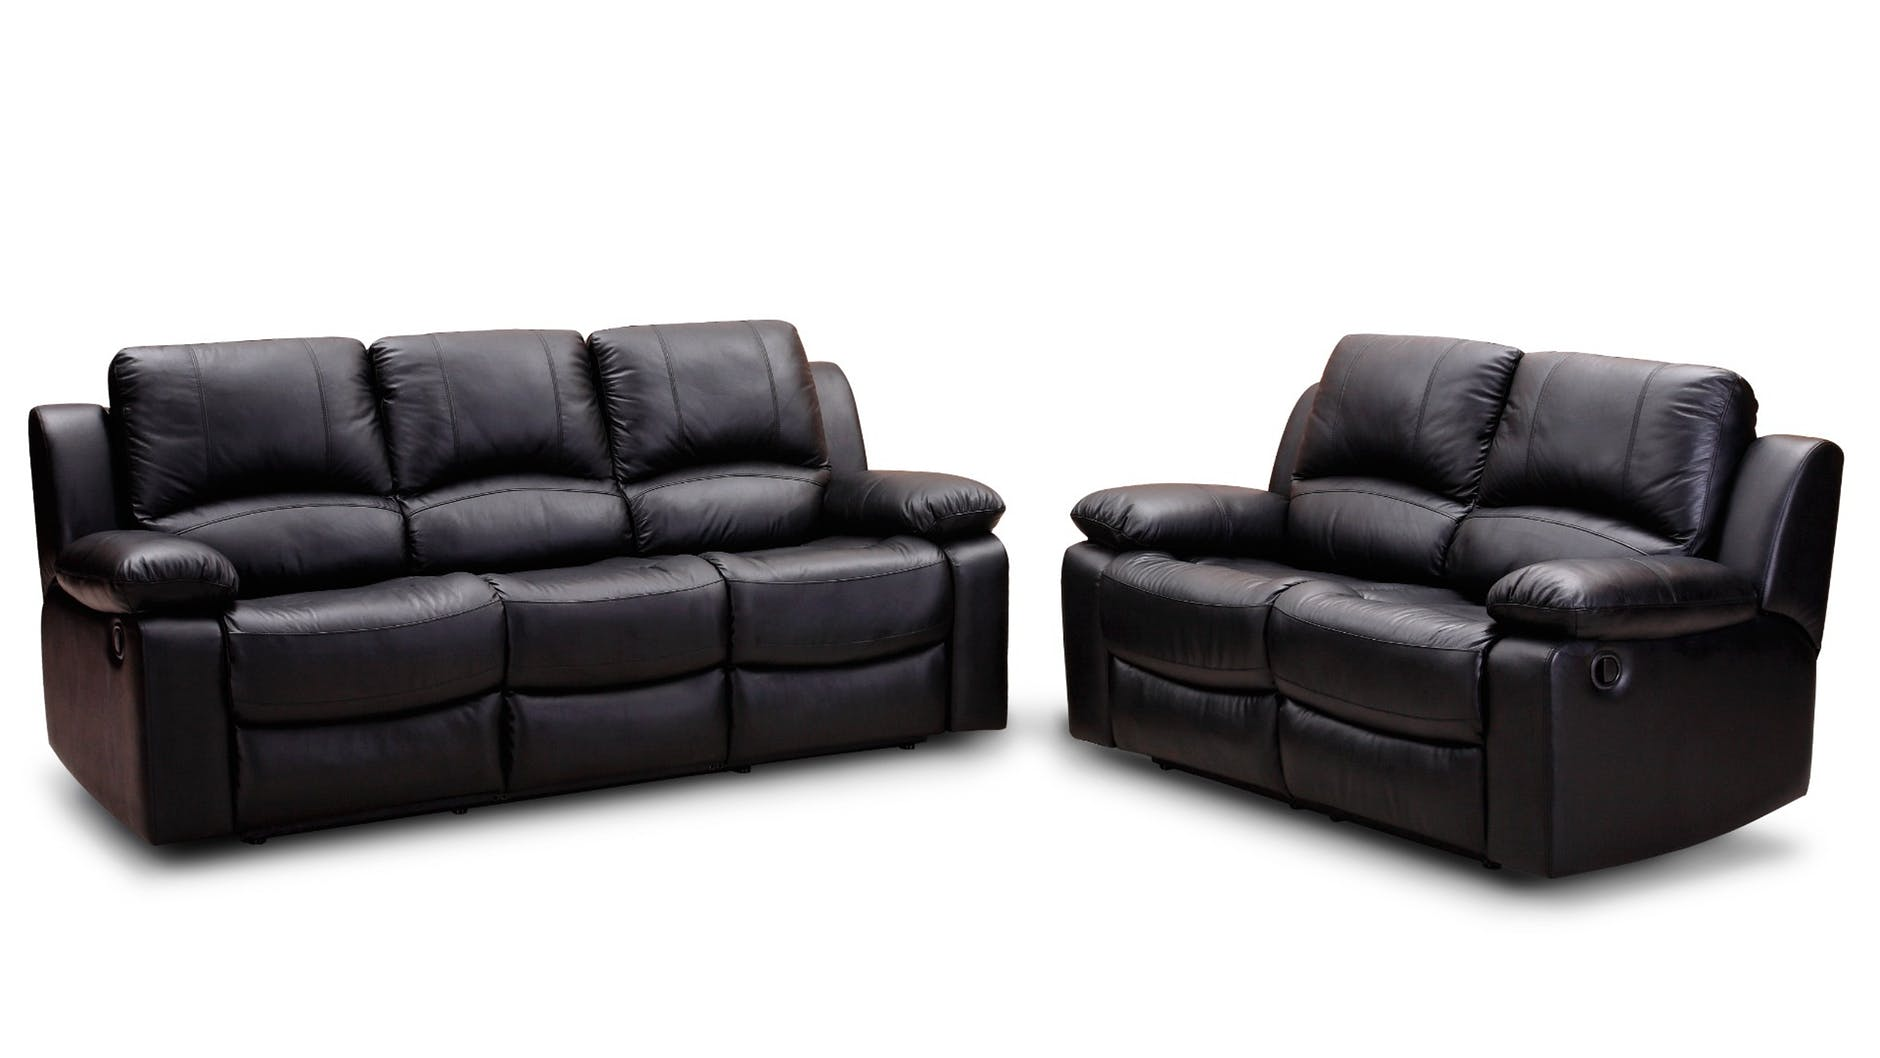 black leather padded cushion couch near to black leather padded cushion loveseat